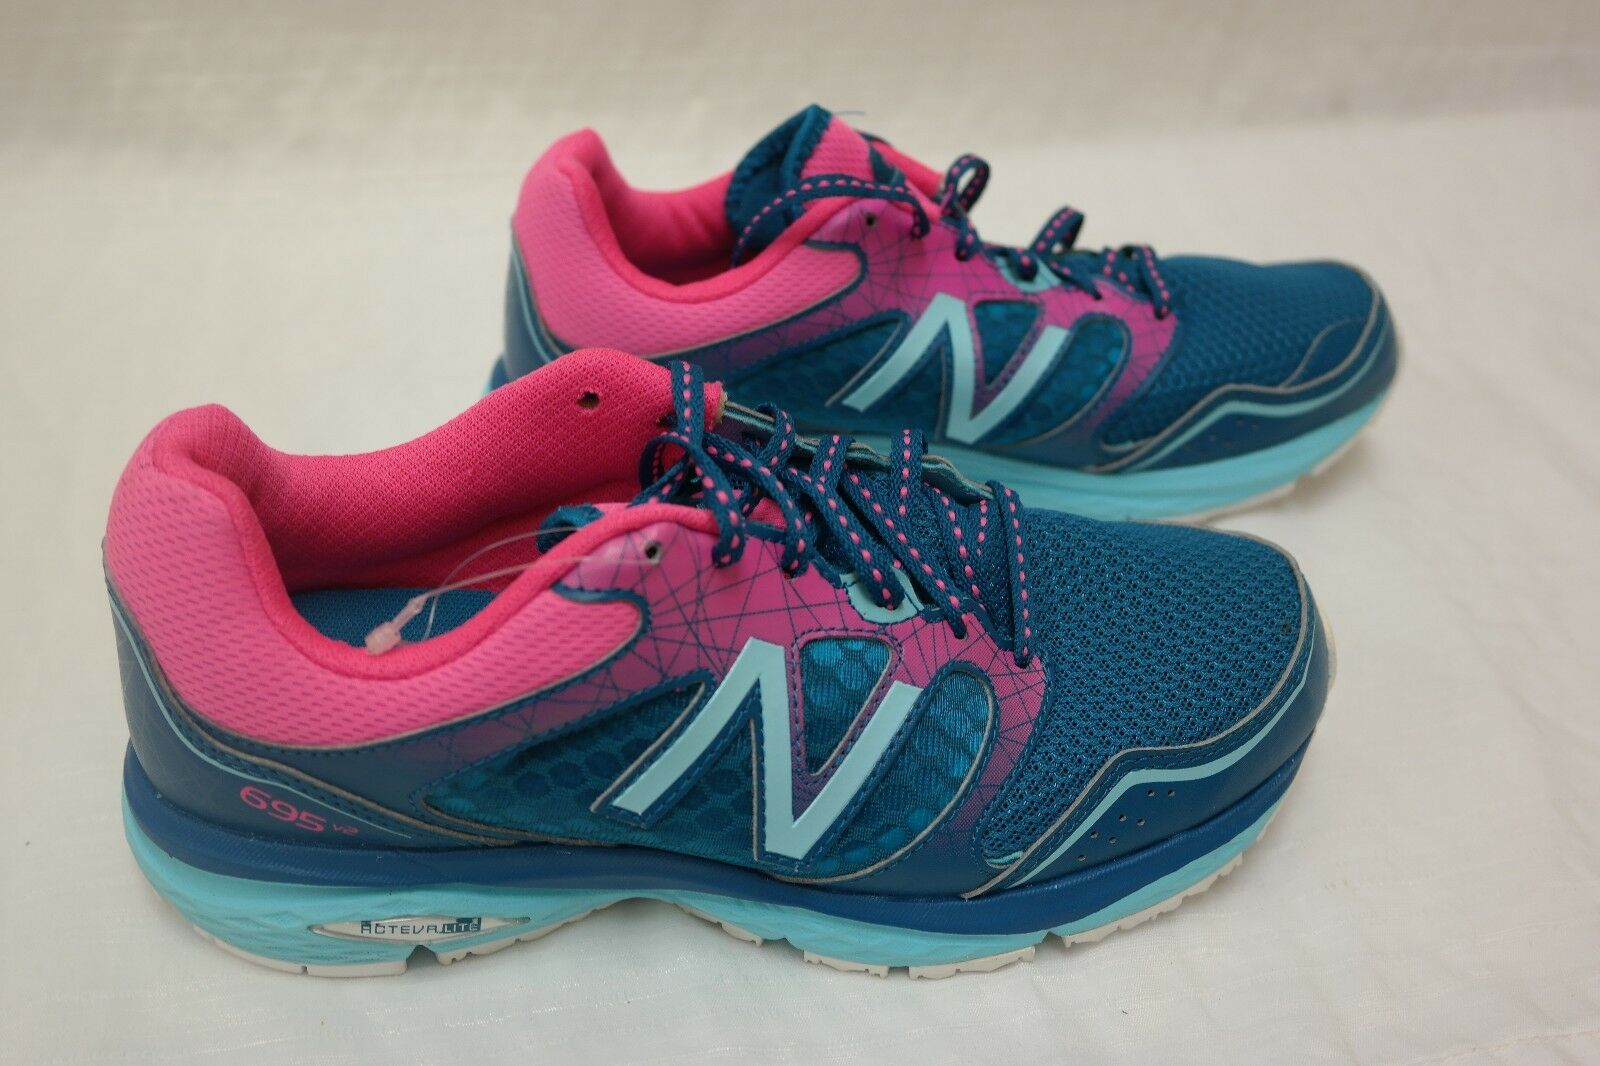 New  WOMEN'S New Balance W695LA2 Athletic shoes Sneakers Turquoise Pink Sz 6.5 H3